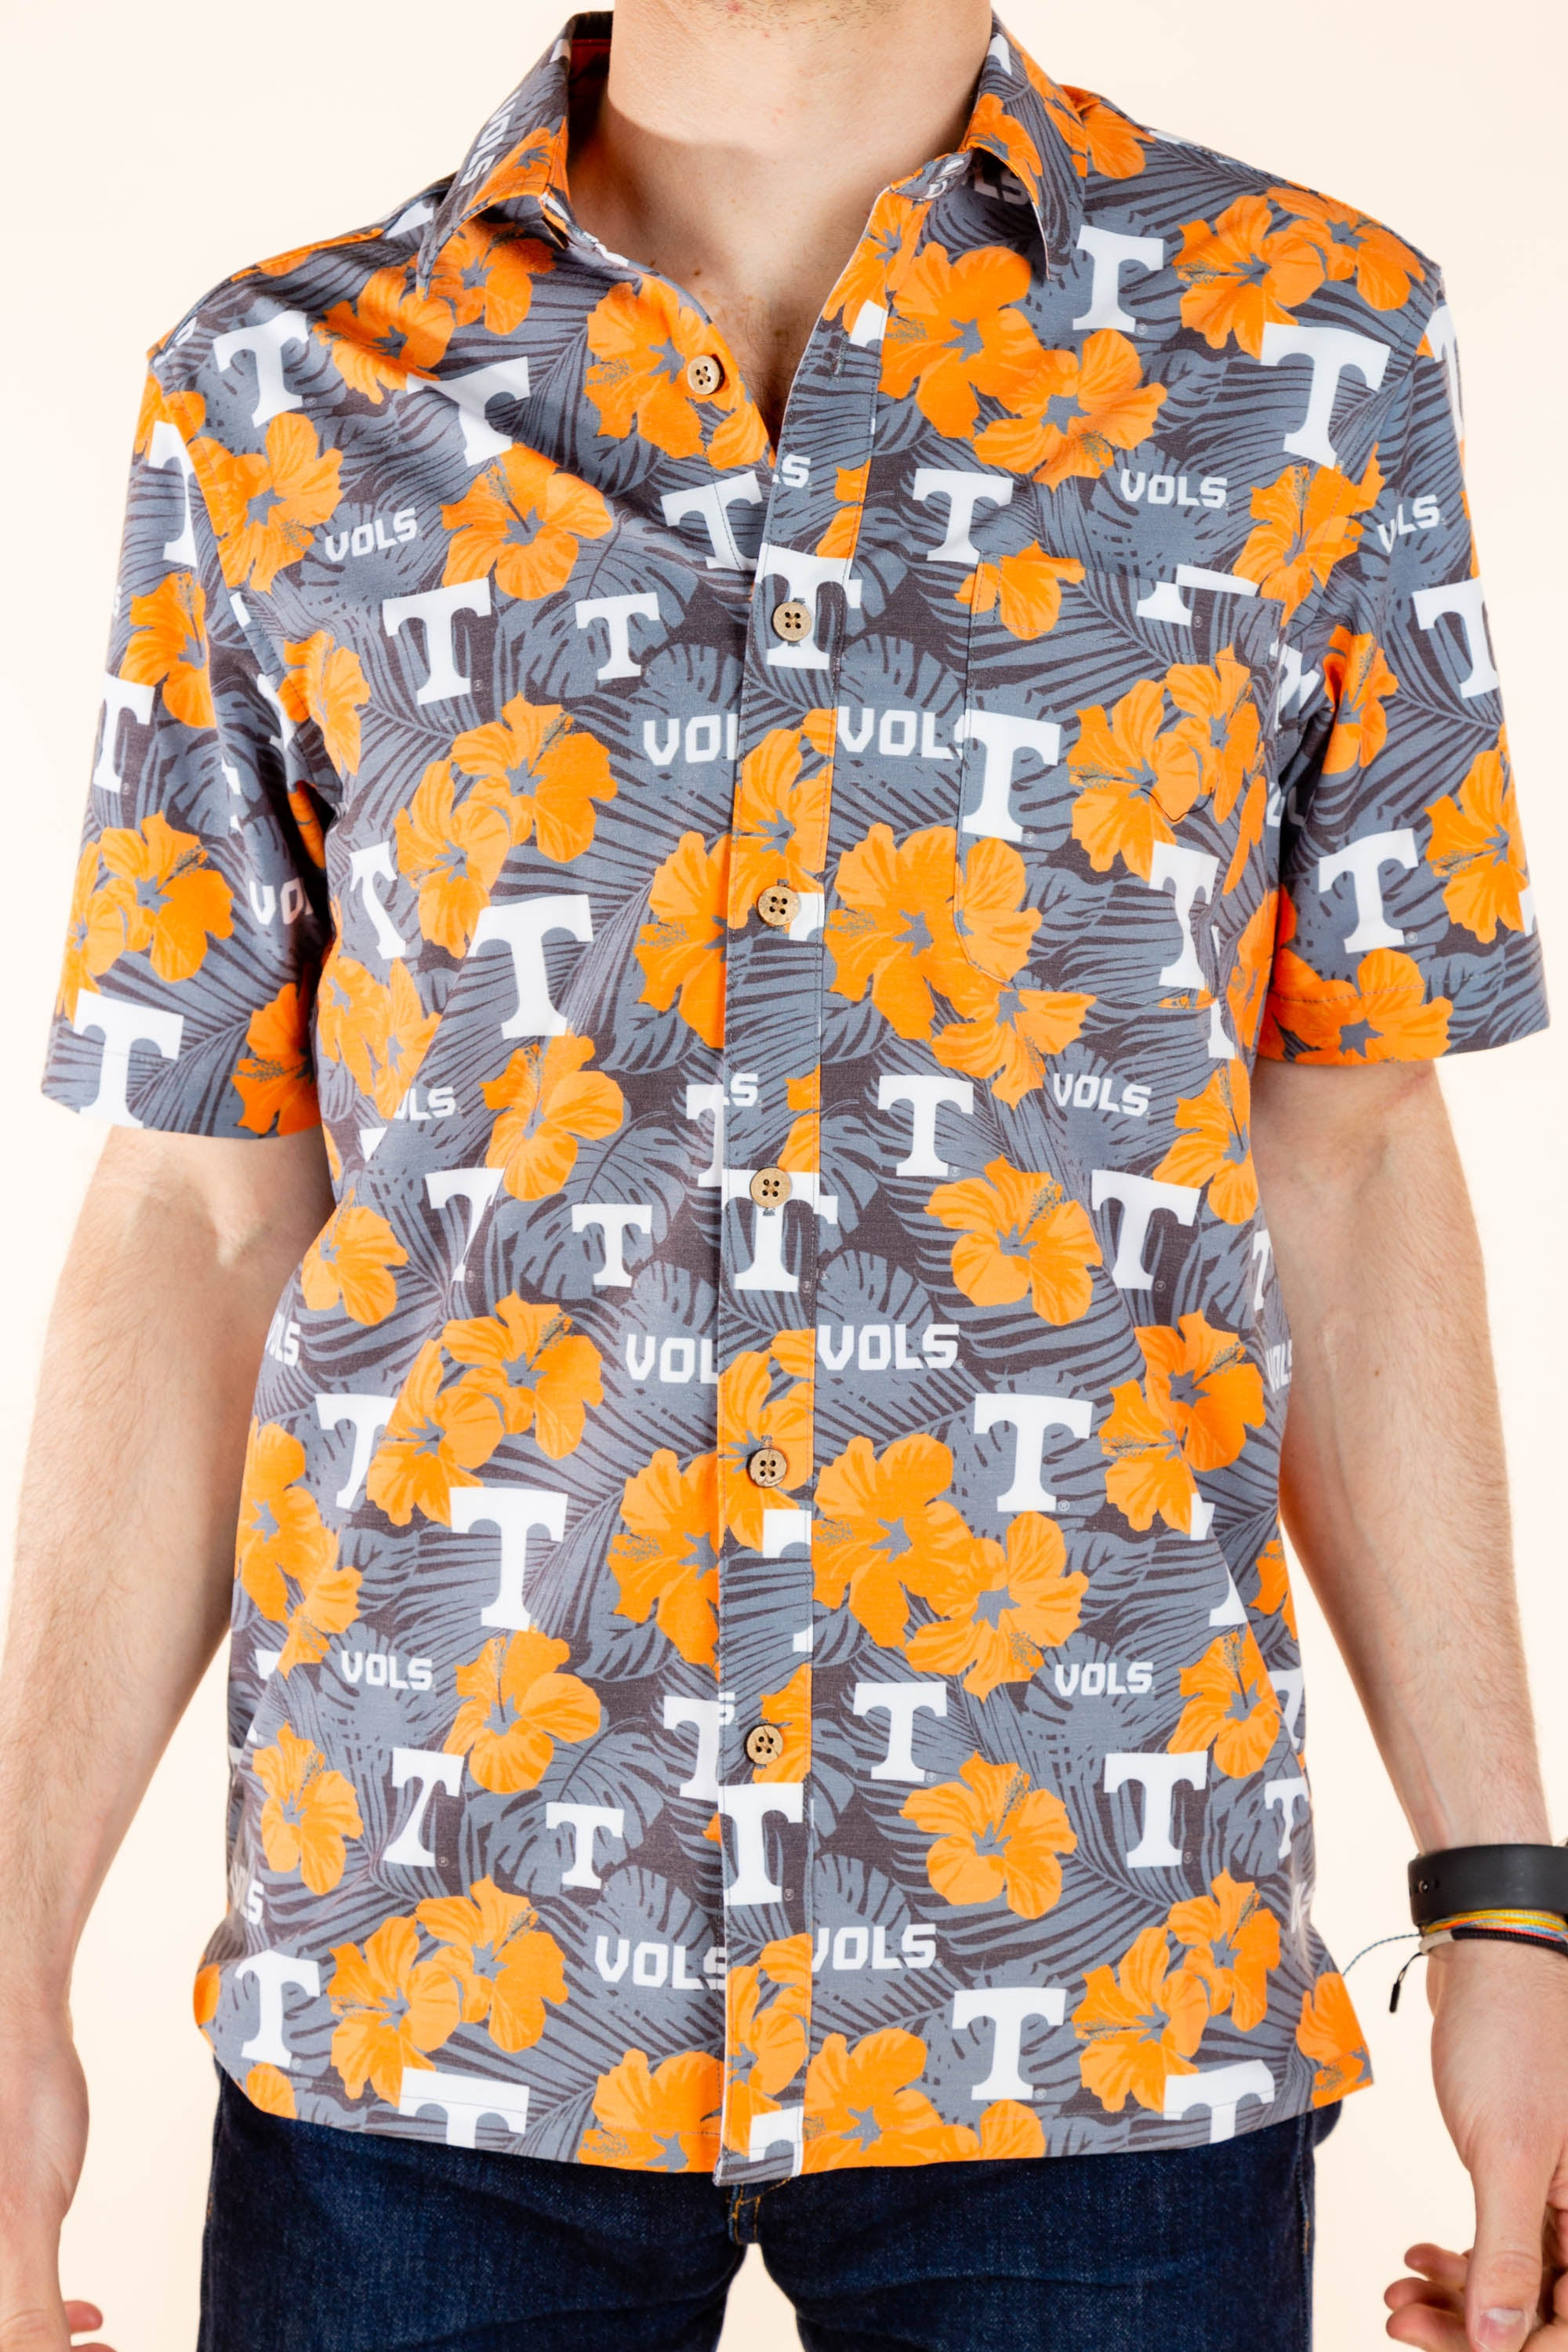 UT Tailgating Shirt